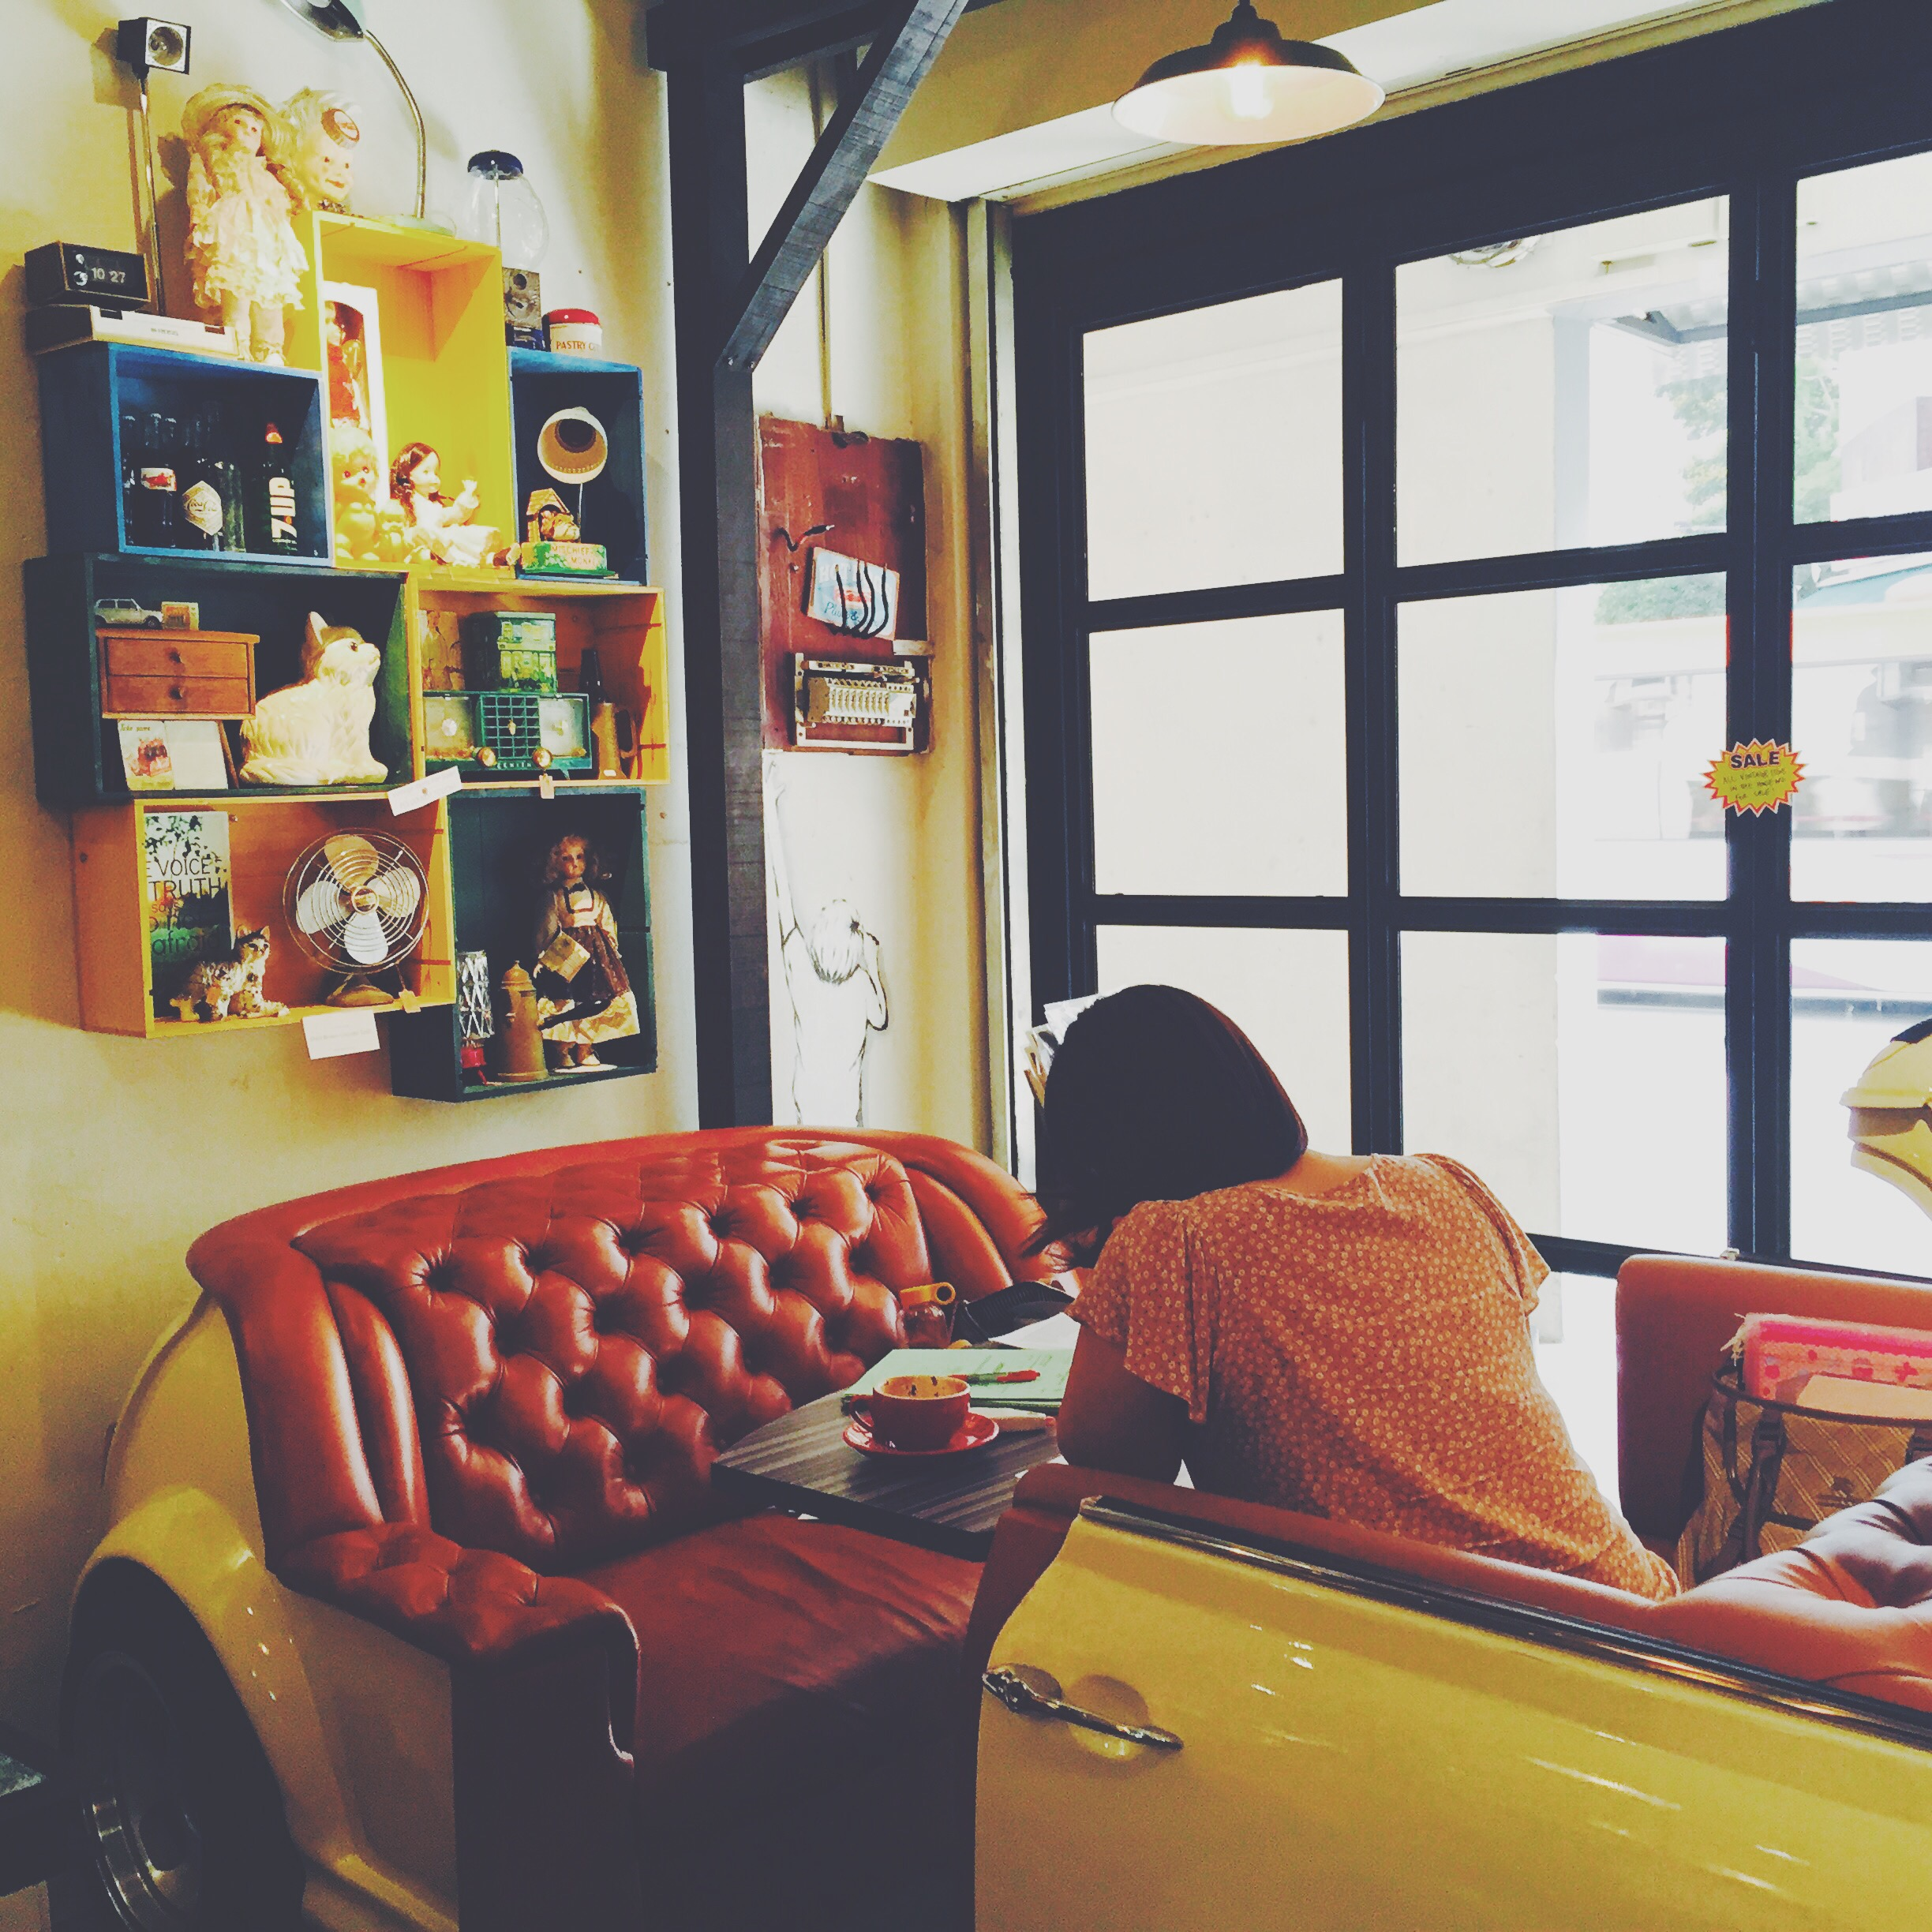 Best Cafes To Work At In Singapore Brunches Cafe